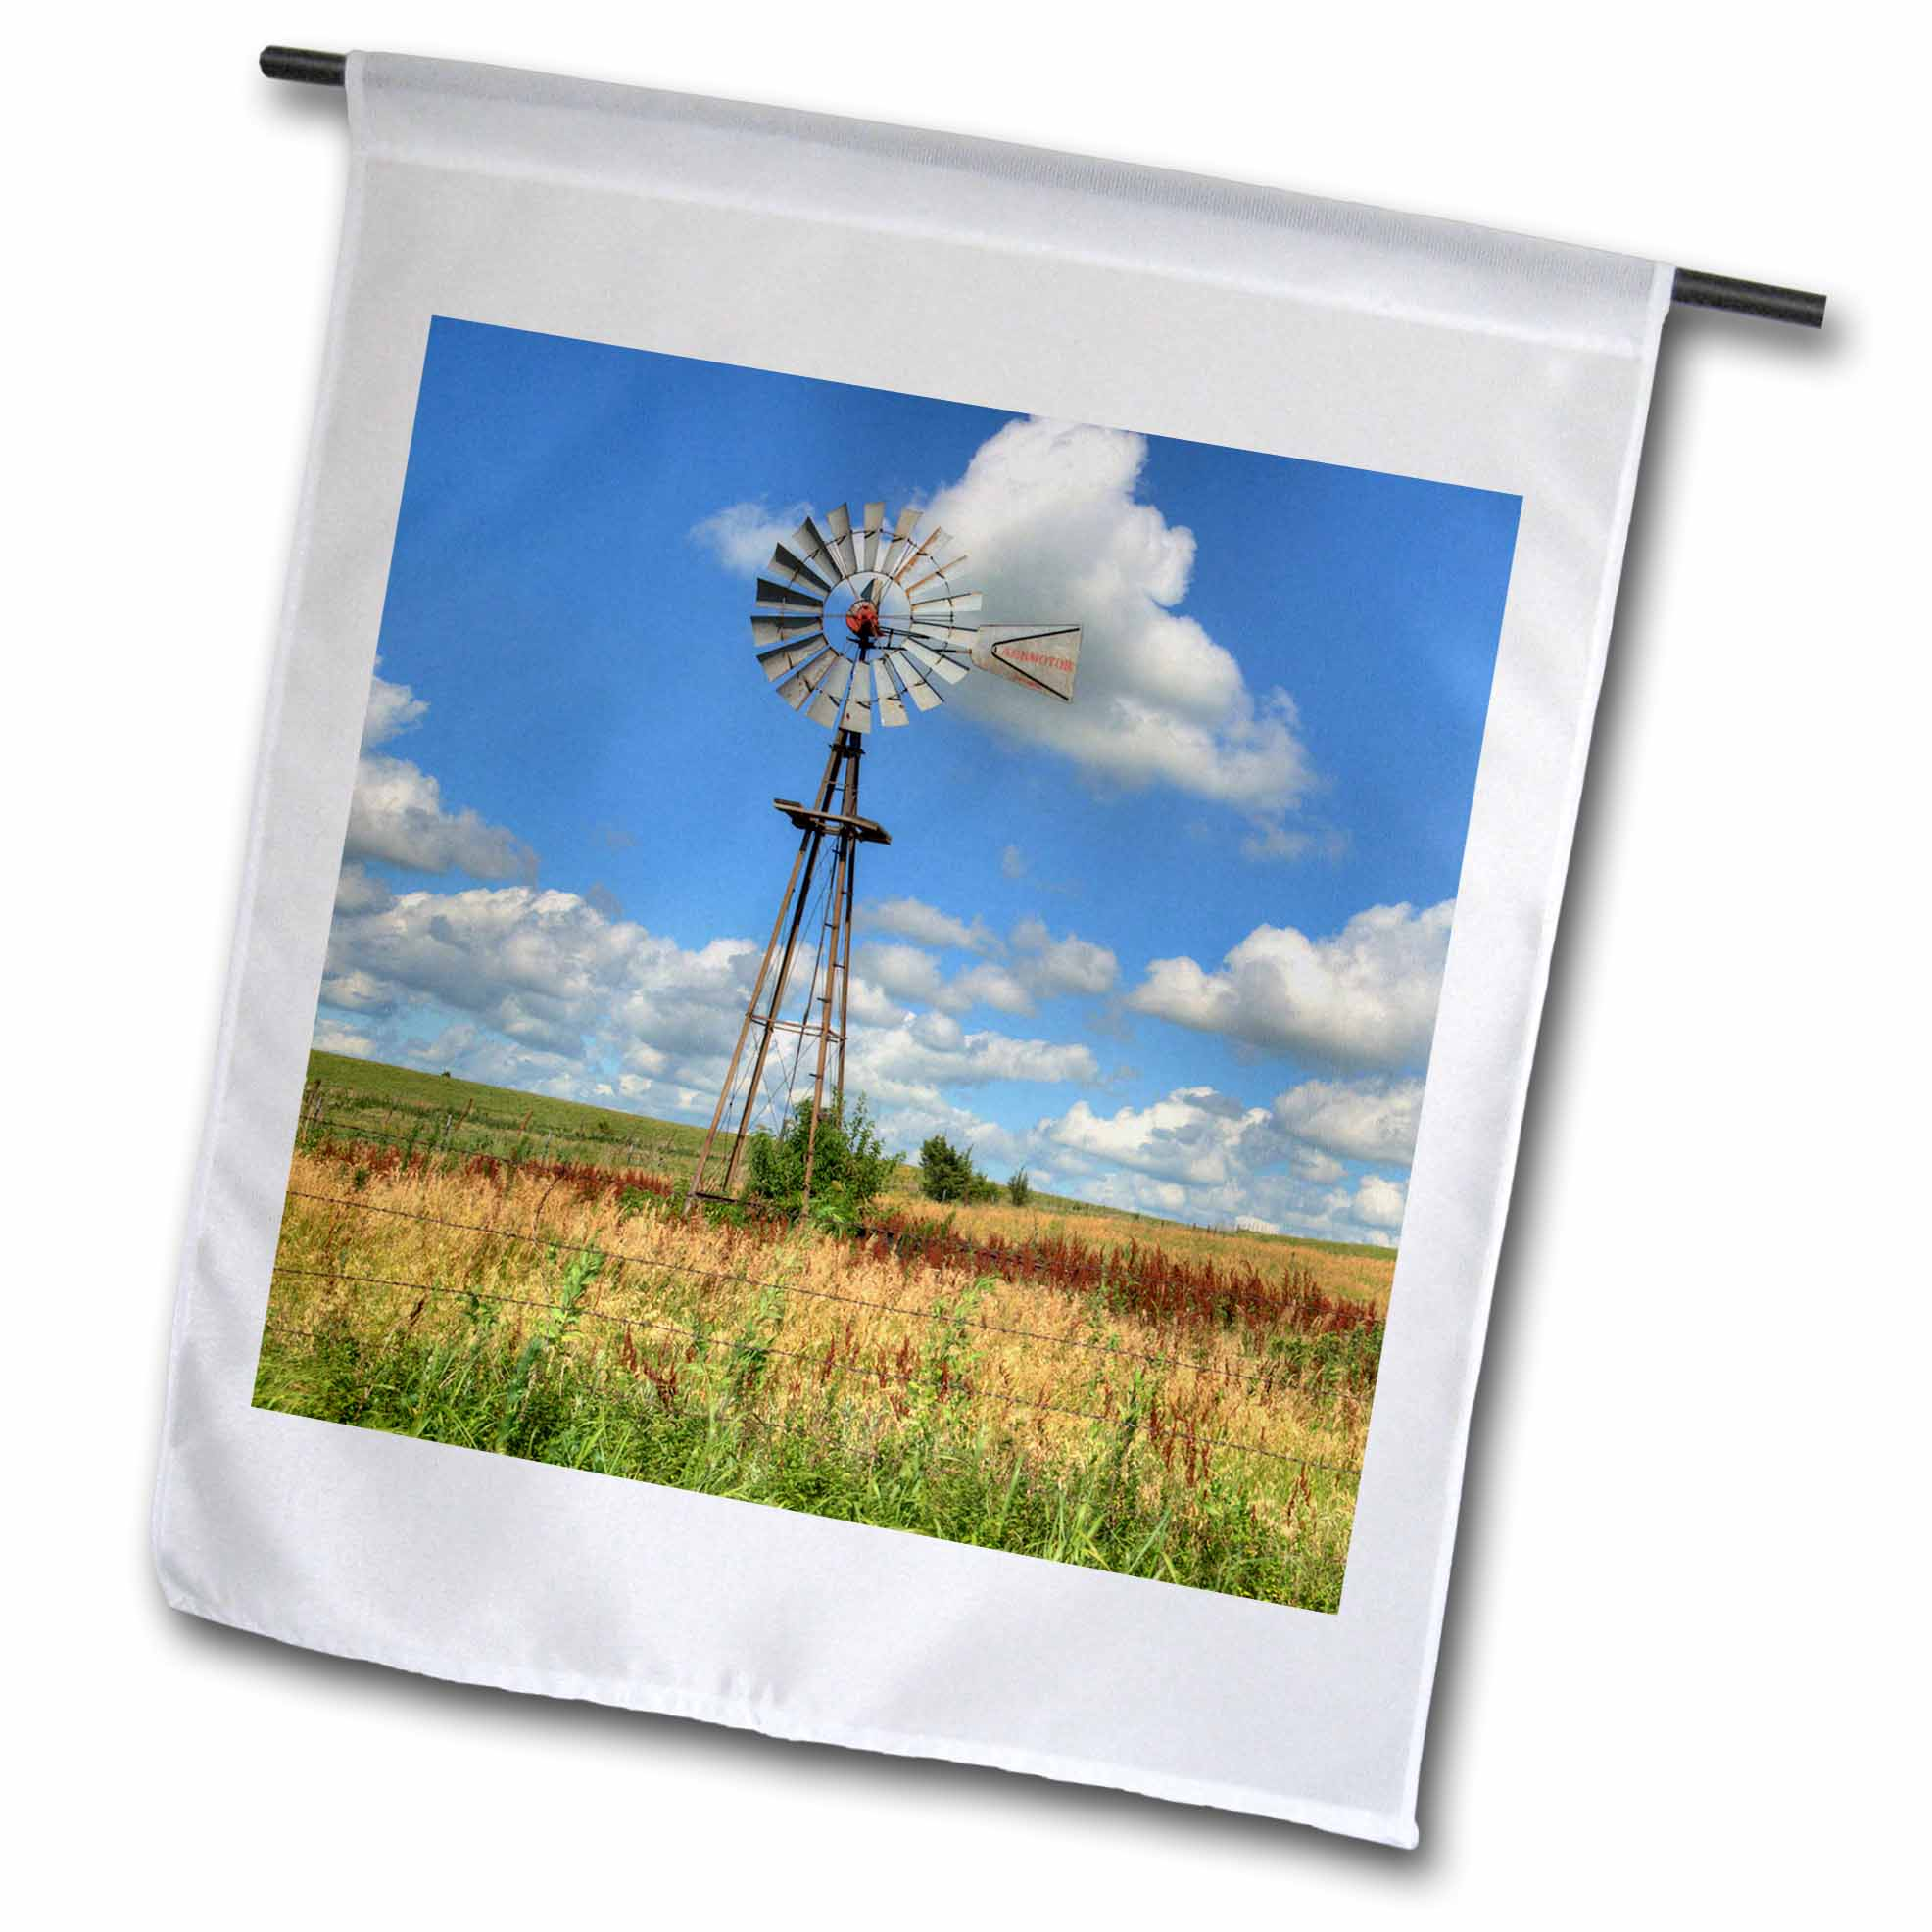 3dRose USA, Kansas. Windmill Landscape, Garden Flag, 12 by 18-Inch by 3dRose